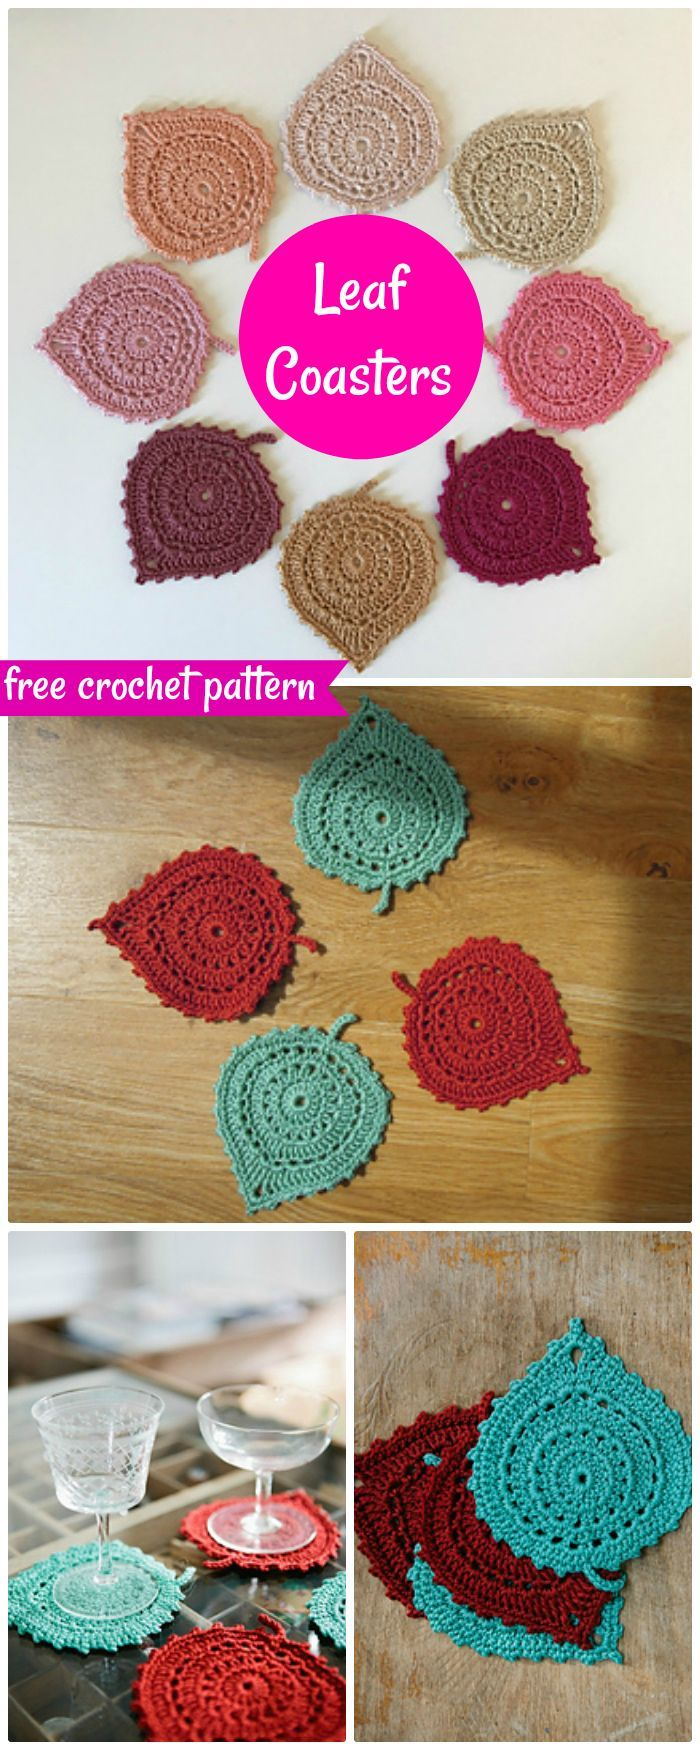 70 easy free crochet coaster patterns for beginners page 6 of 14 70 easy free crochet coaster patterns for beginners page 6 of 14 bankloansurffo Images